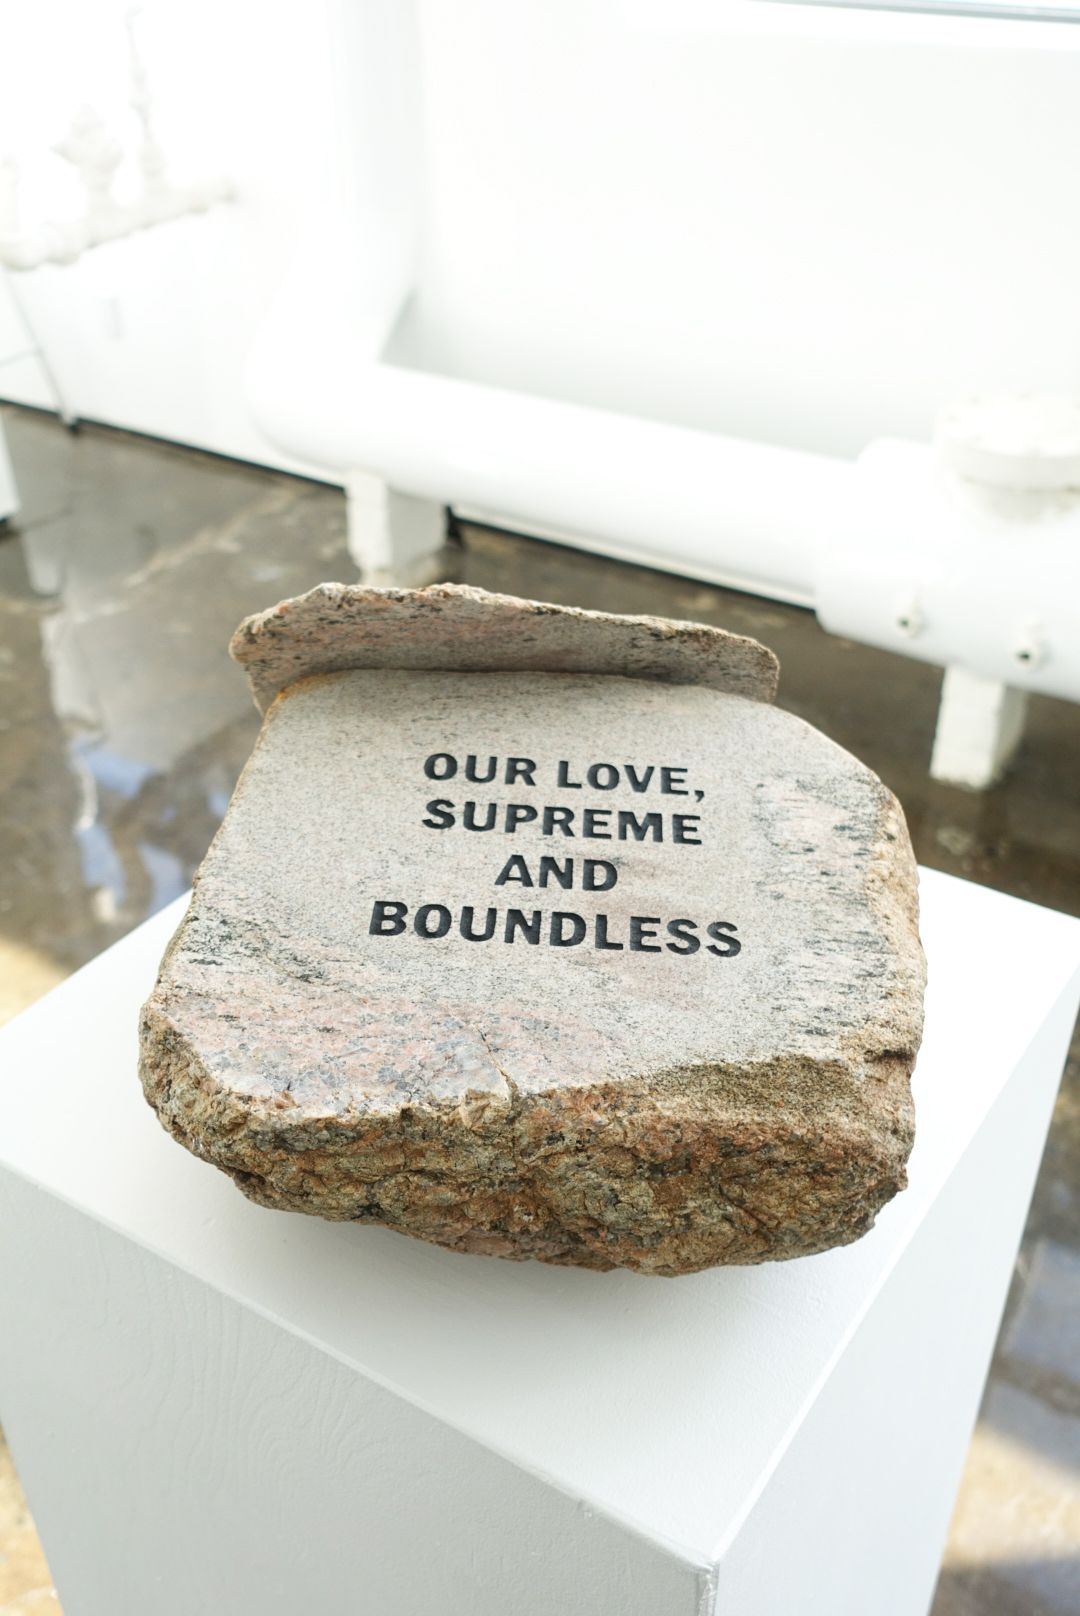 MICHAEL VICKERS | MONUMENT IV (LOVE)| ENGRAVED AND PAINTED STONE BOULDER | 5,5 X 13 X 12 INCHES| 2017